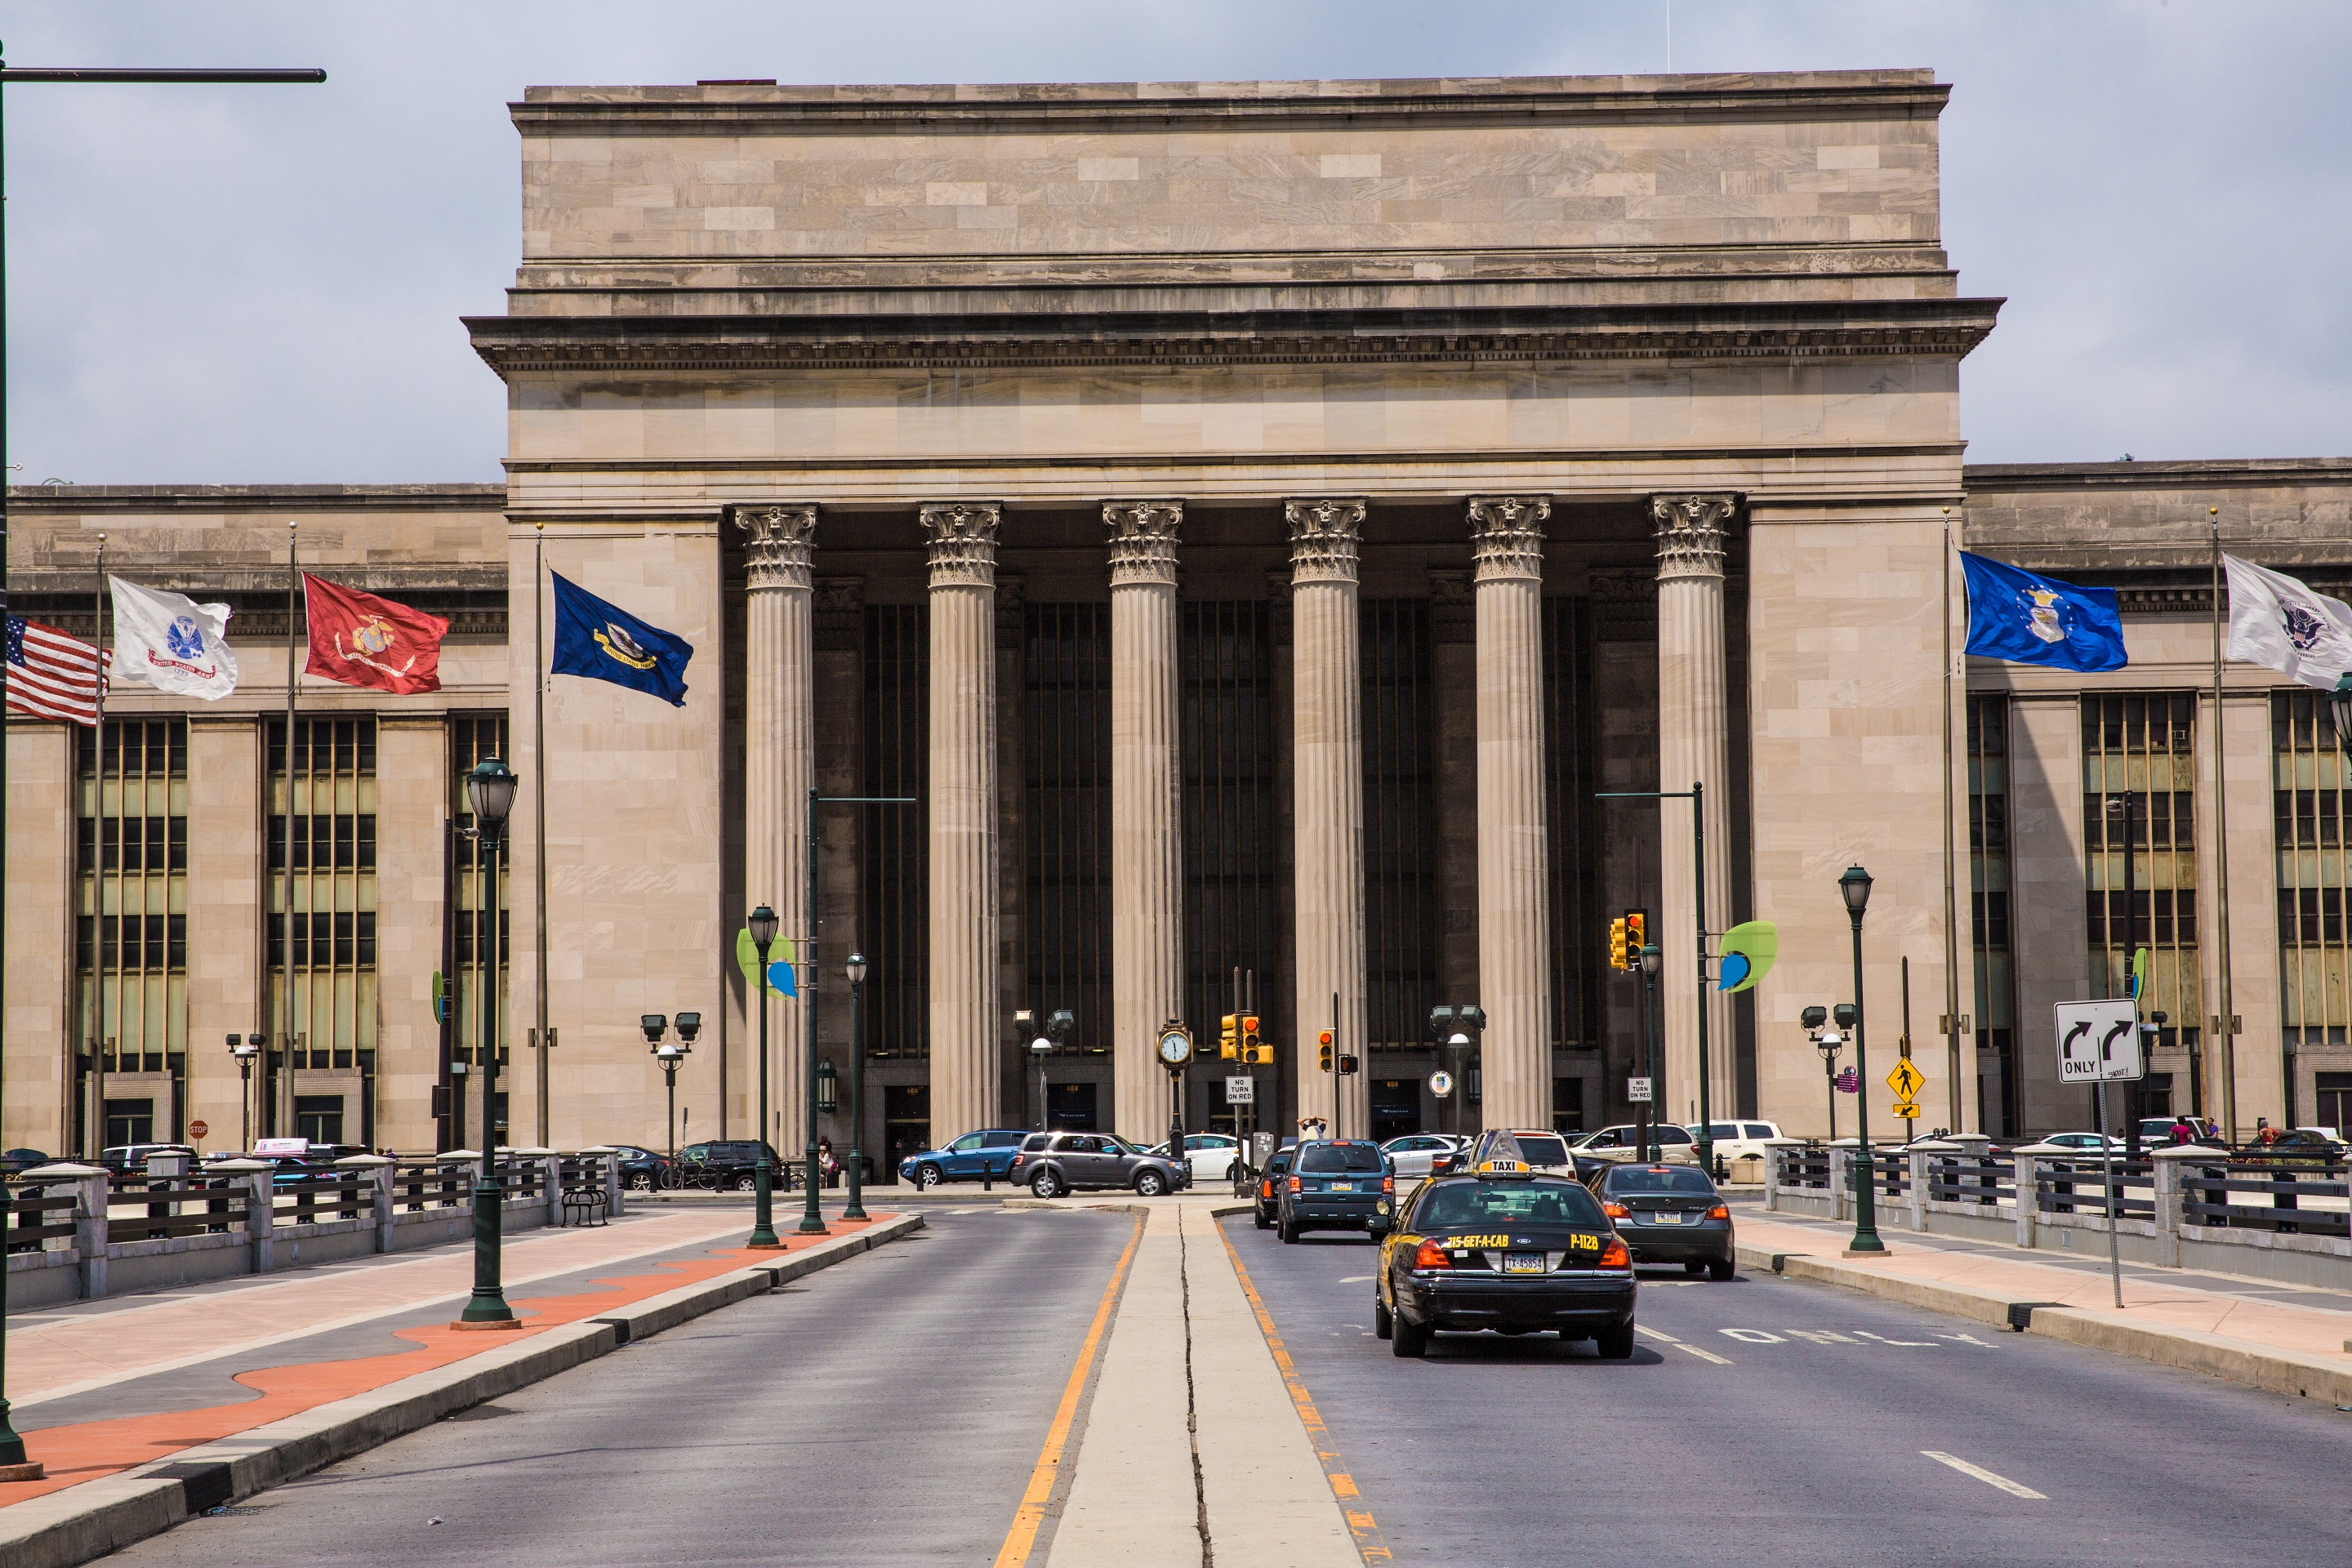 Exterior and Interior of Amtrak's 30th Street Station, known as PHL.